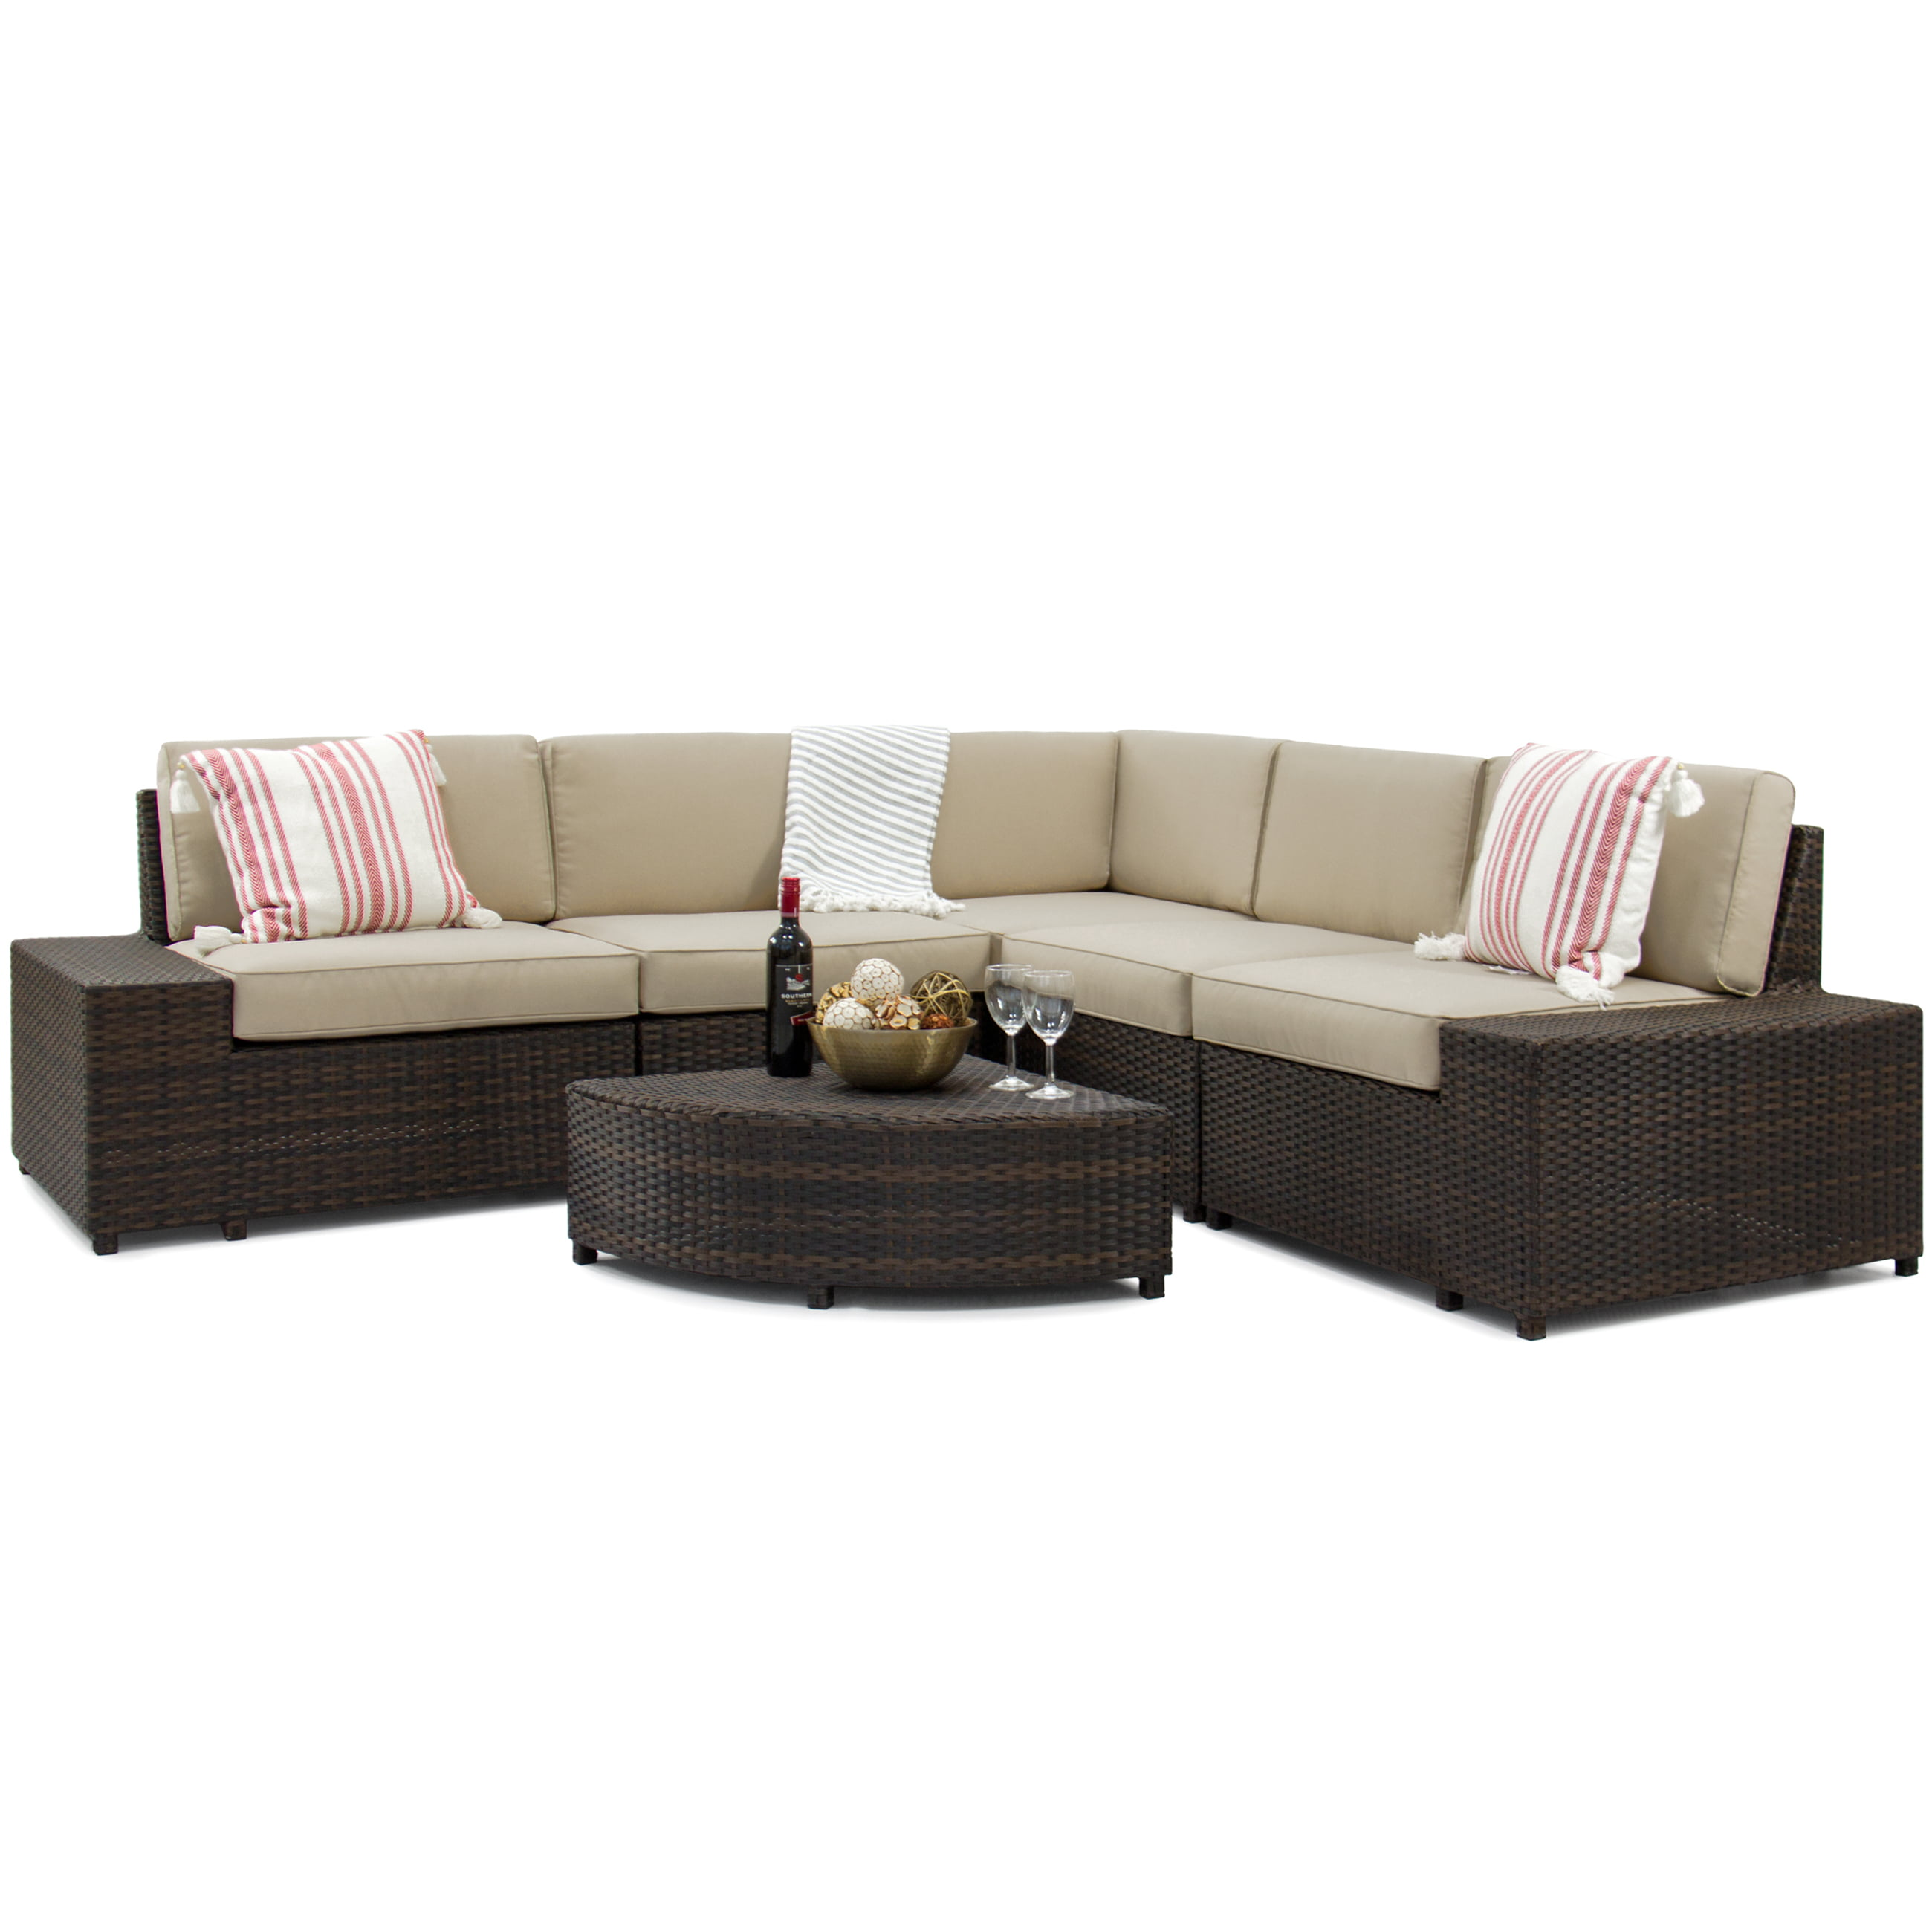 Best Choice Products 6 Piece Wicker Sectional Sofa Patio Furniture Set W 5 Seats Corner Coffee Table Padded Cushions No Embly Required Brown